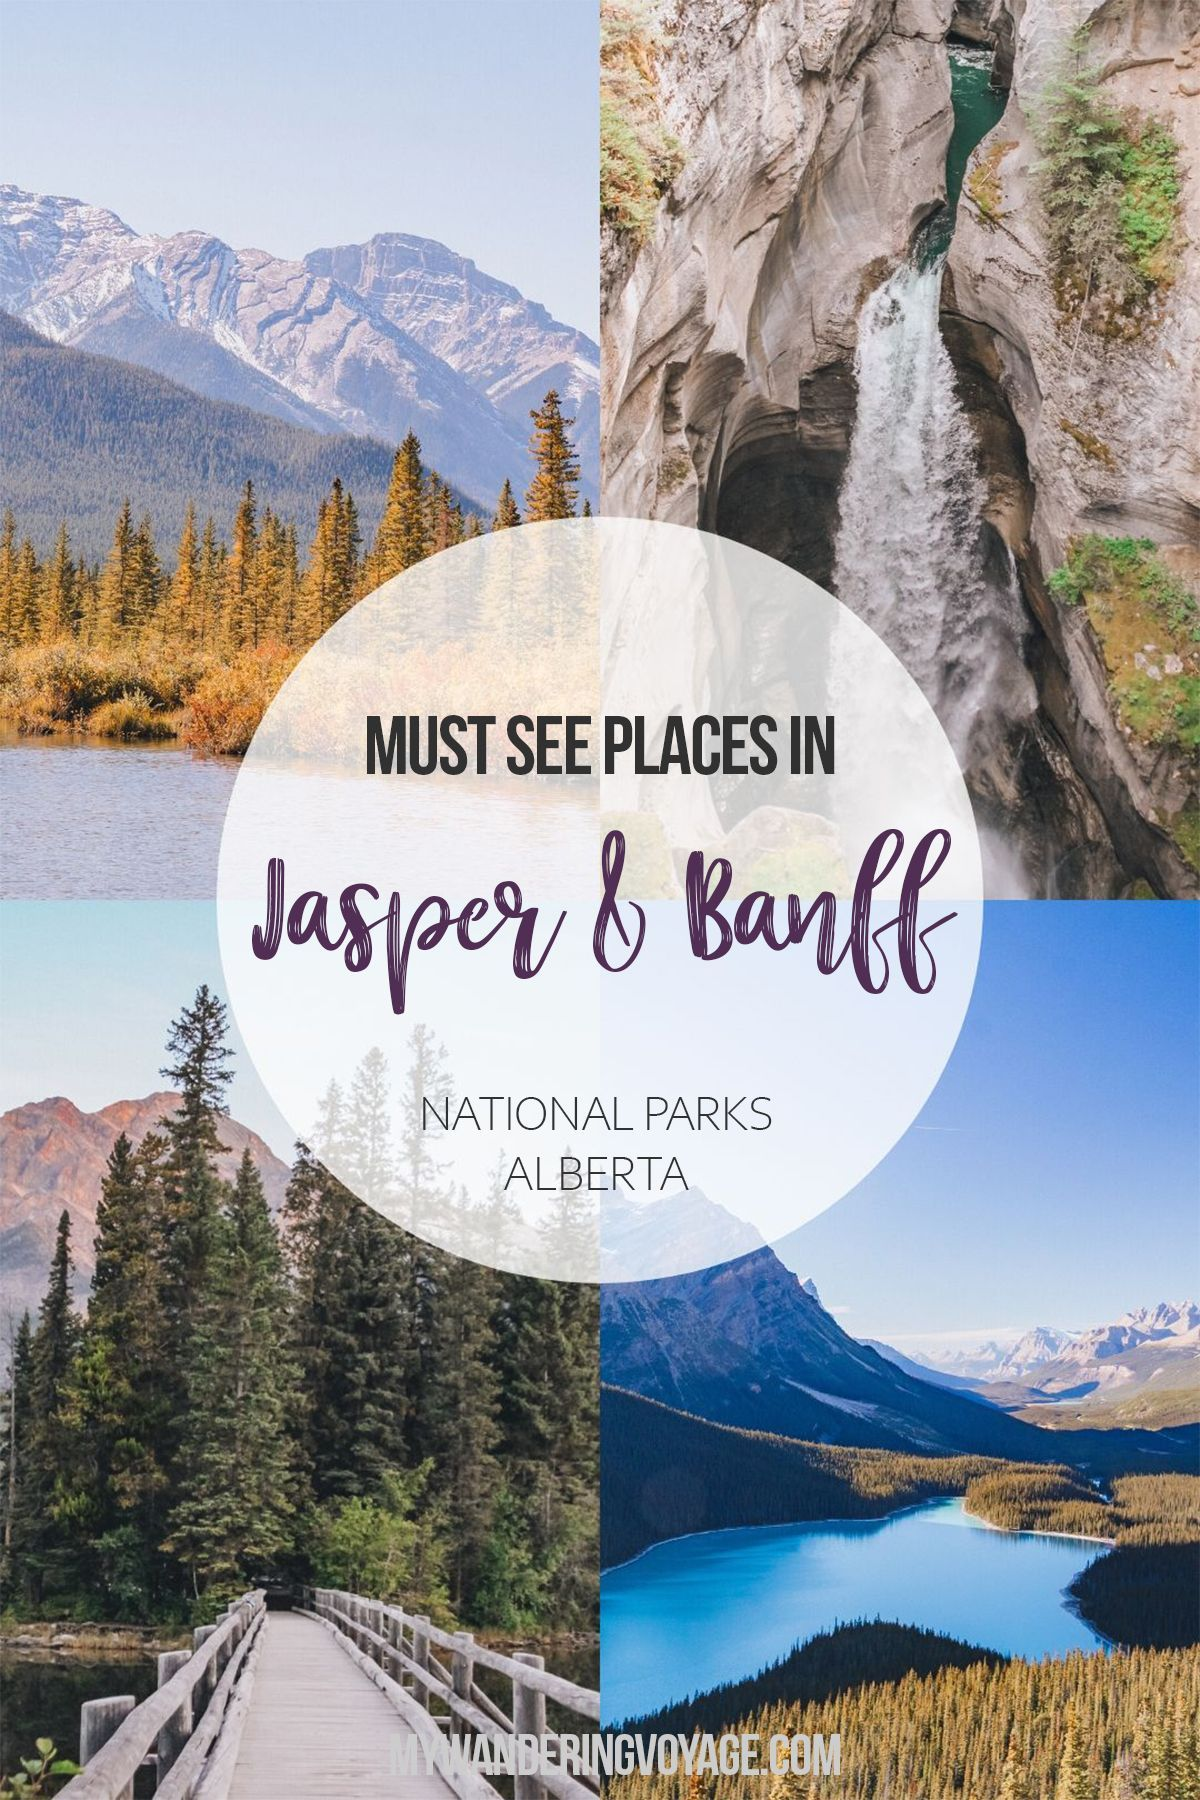 Must see places between Jasper and Banff National Parks Alberta Canada – No trip to Canada is complete without experiencing the Canadian Rockies in Jasper National Park and Banff National Park. Here are the best places to stop along the Icefields Parkway and beyond. | My Wandering Voyage travel blog #Jasper #Banff #style #shopping #styles #outfit #pretty #girl #girls #beauty #beautiful #me #cute #stylish #photooftheday #swag #dress #shoes #diy #design #fashion #Travel